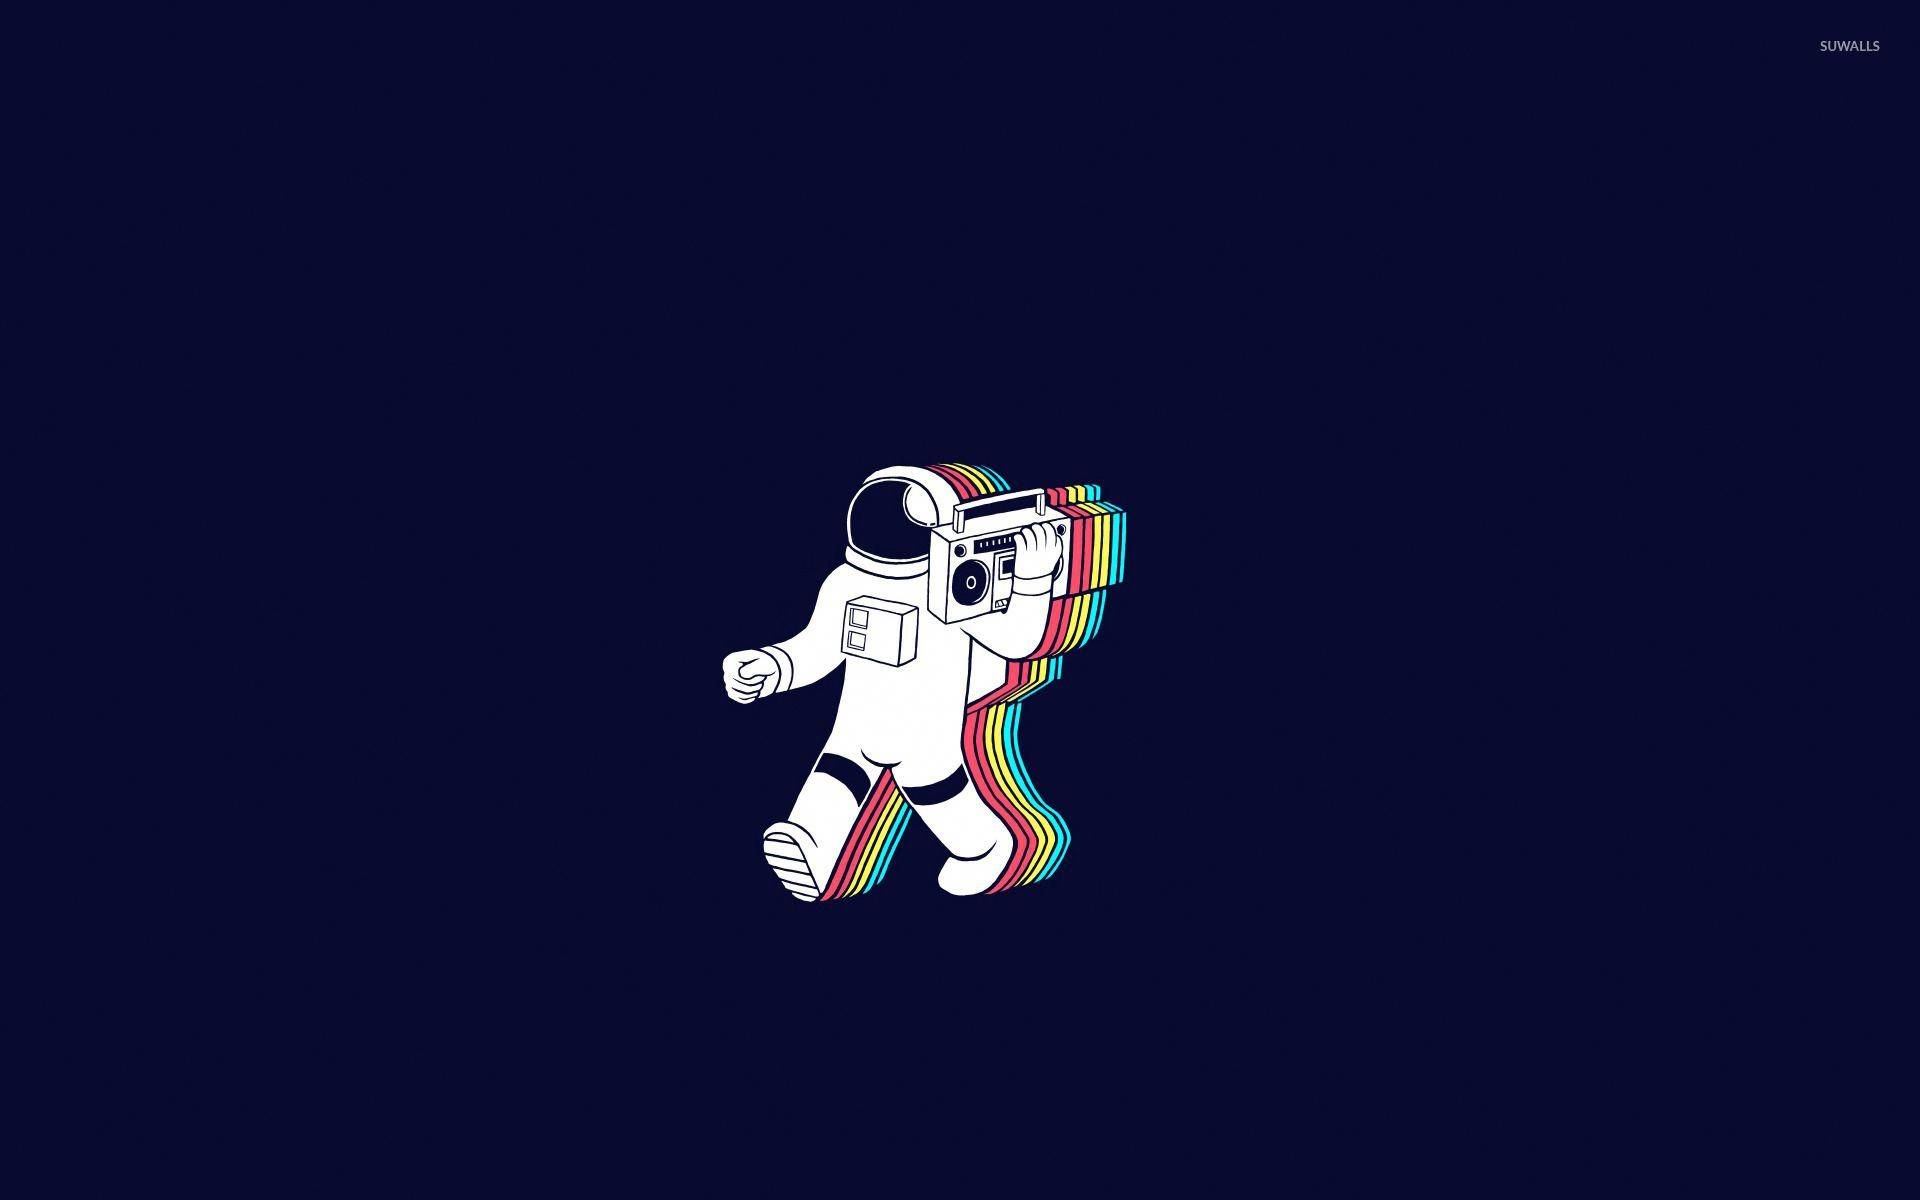 Astronaut Wallpaper Hd Resolution Astheticwallpaperiphoneminimal Astronaut Wallpaper Desktop Wallpaper Art Aesthetic Desktop Wallpaper